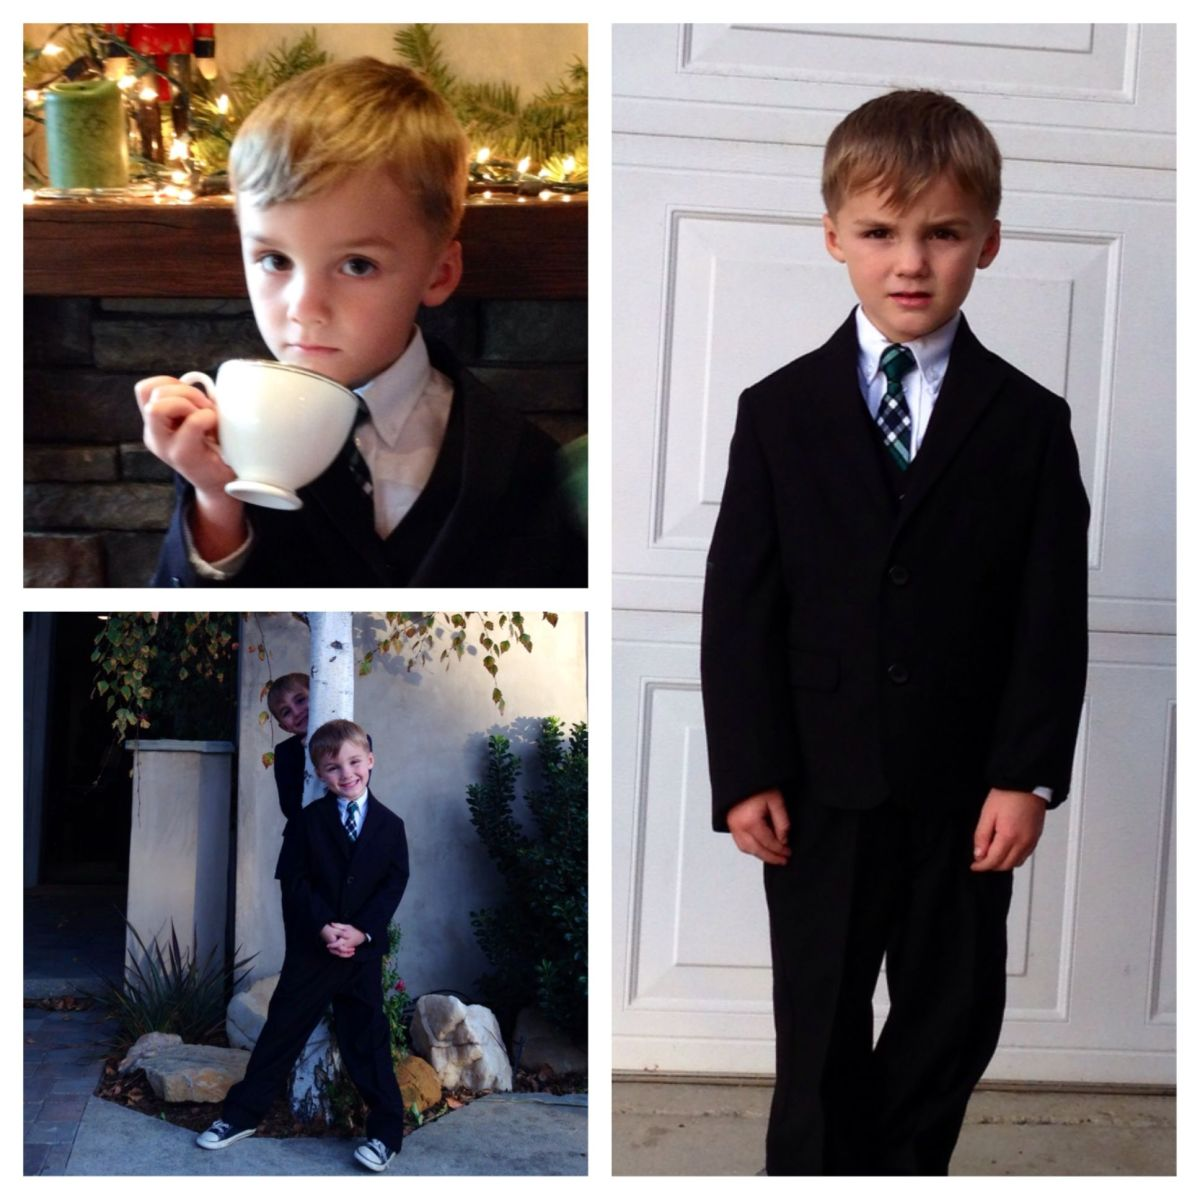 IZOD suits for boys